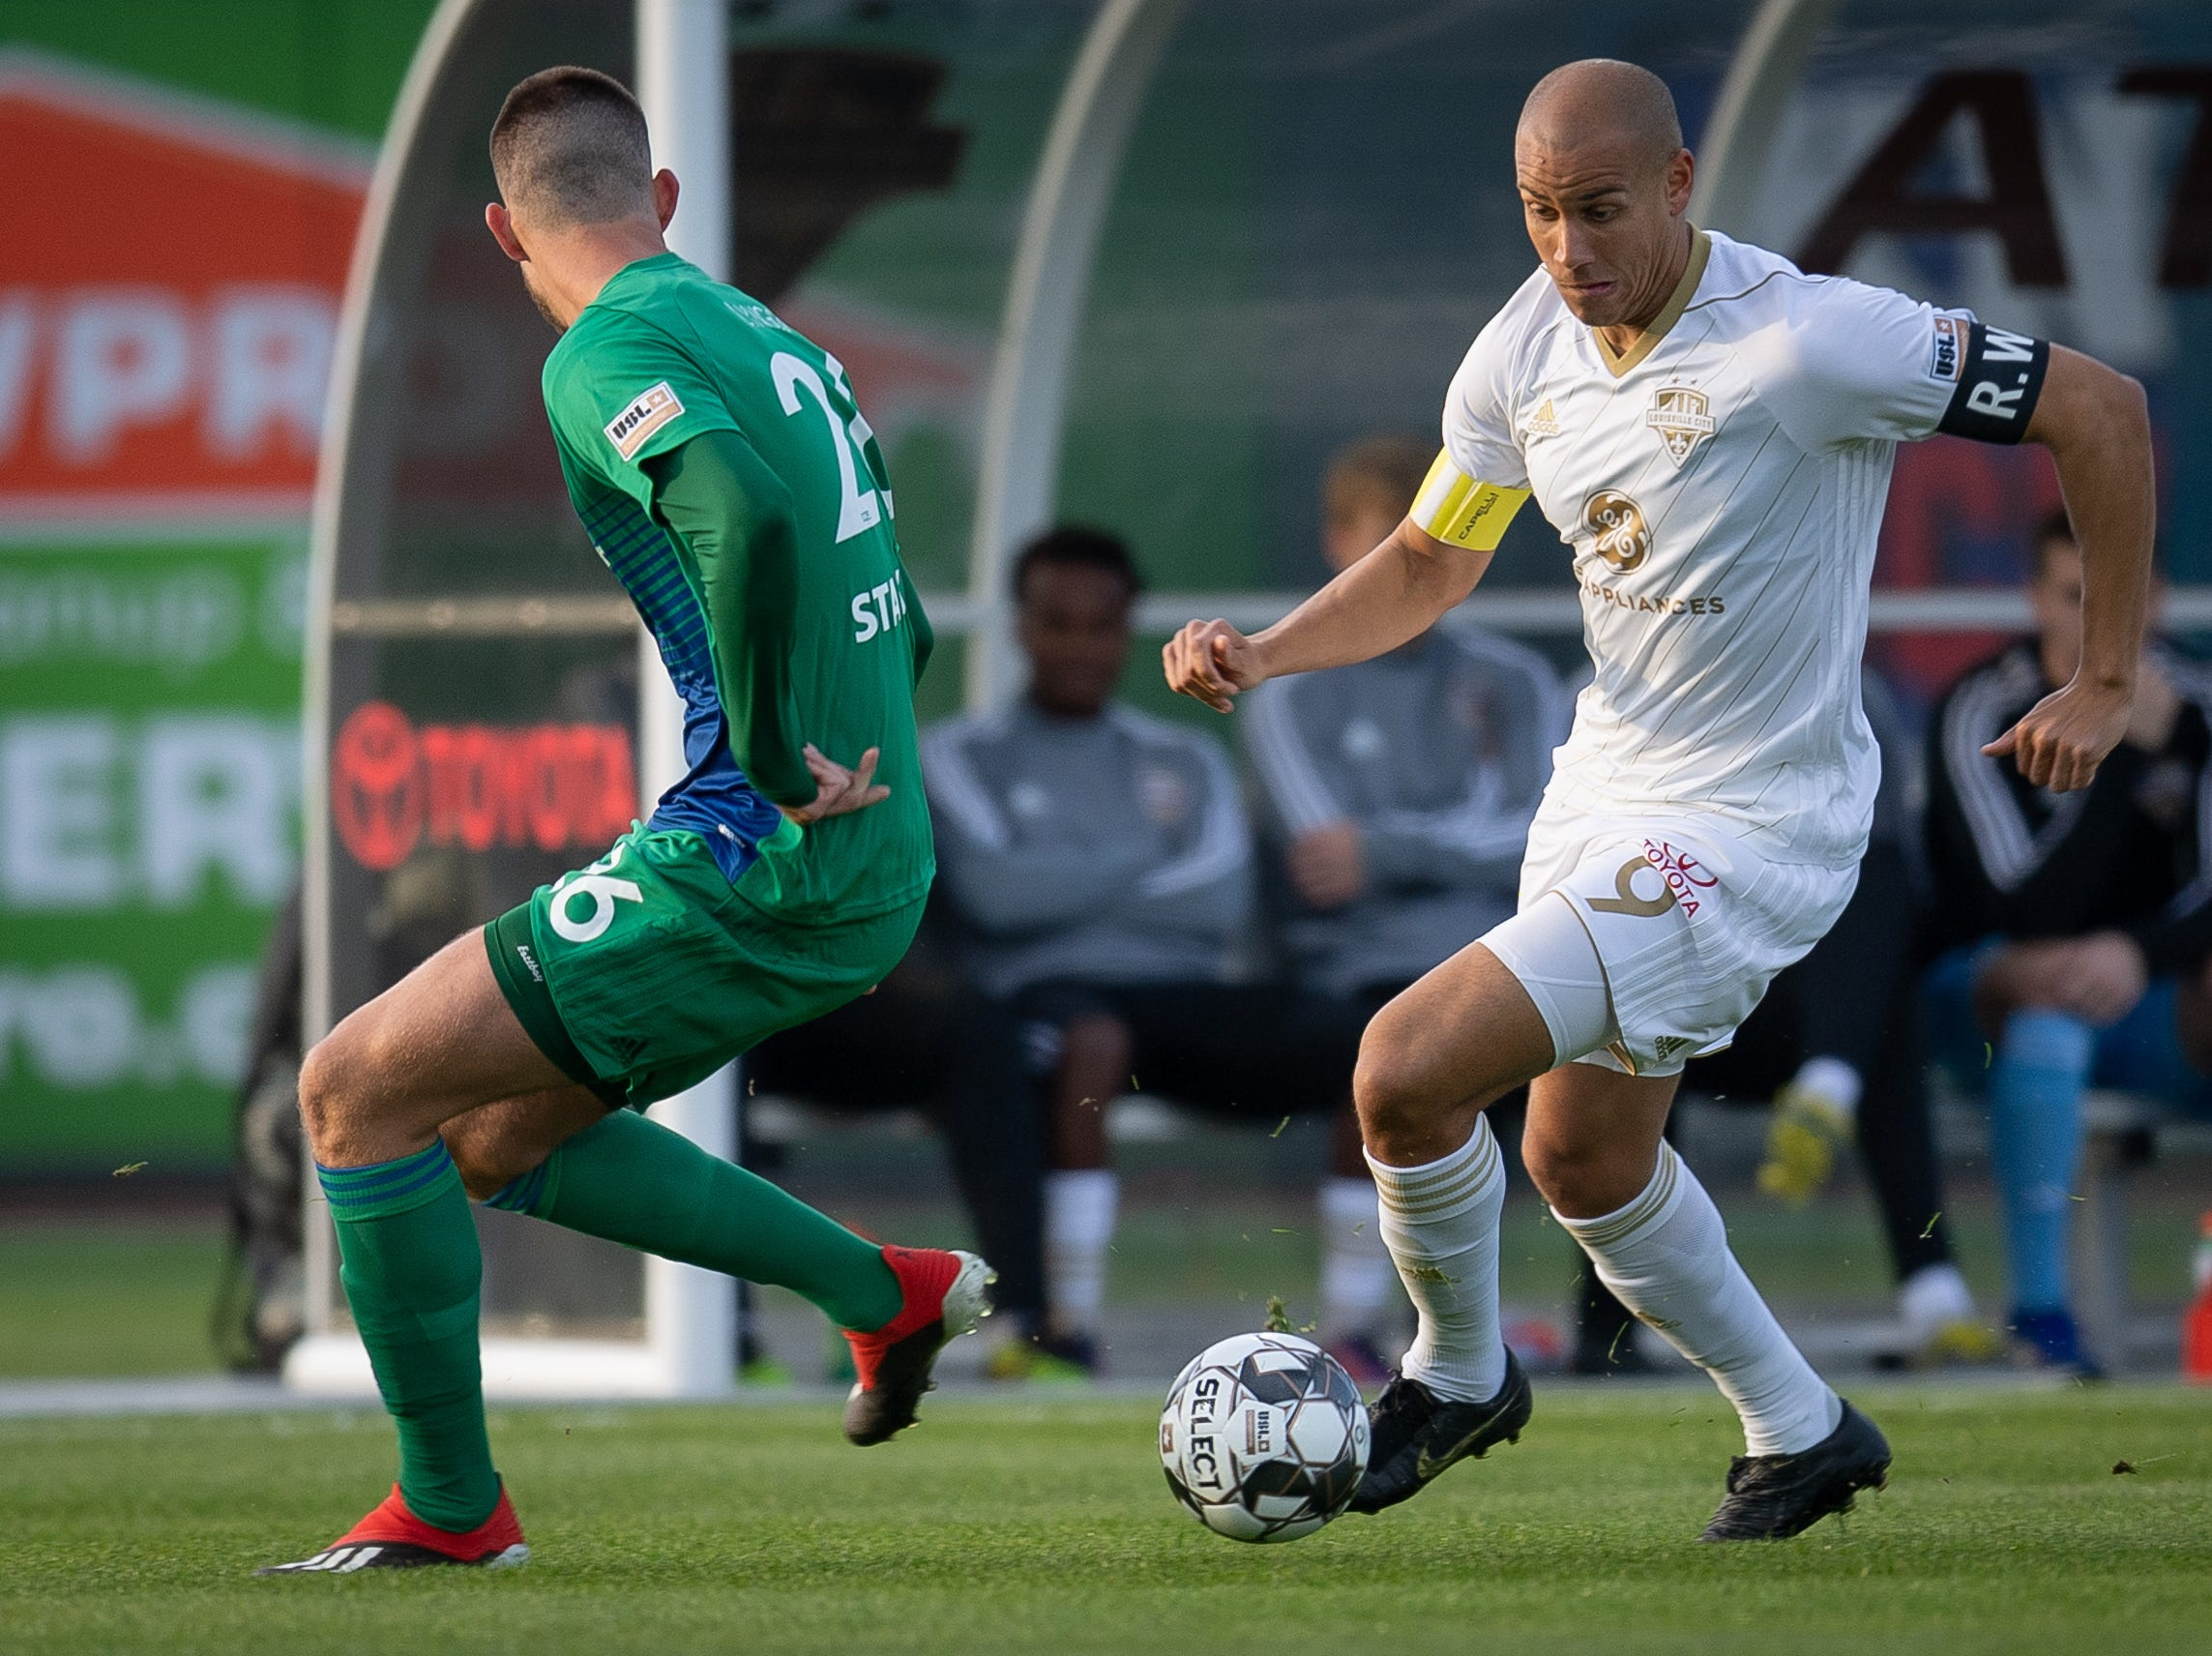 Louisville City FC forward Luke Spencer (9) plays against Hartford Athletic Nikolaj Lyngo during the season opening match in Louisville, Ky., Saturday, March 23, 2019.